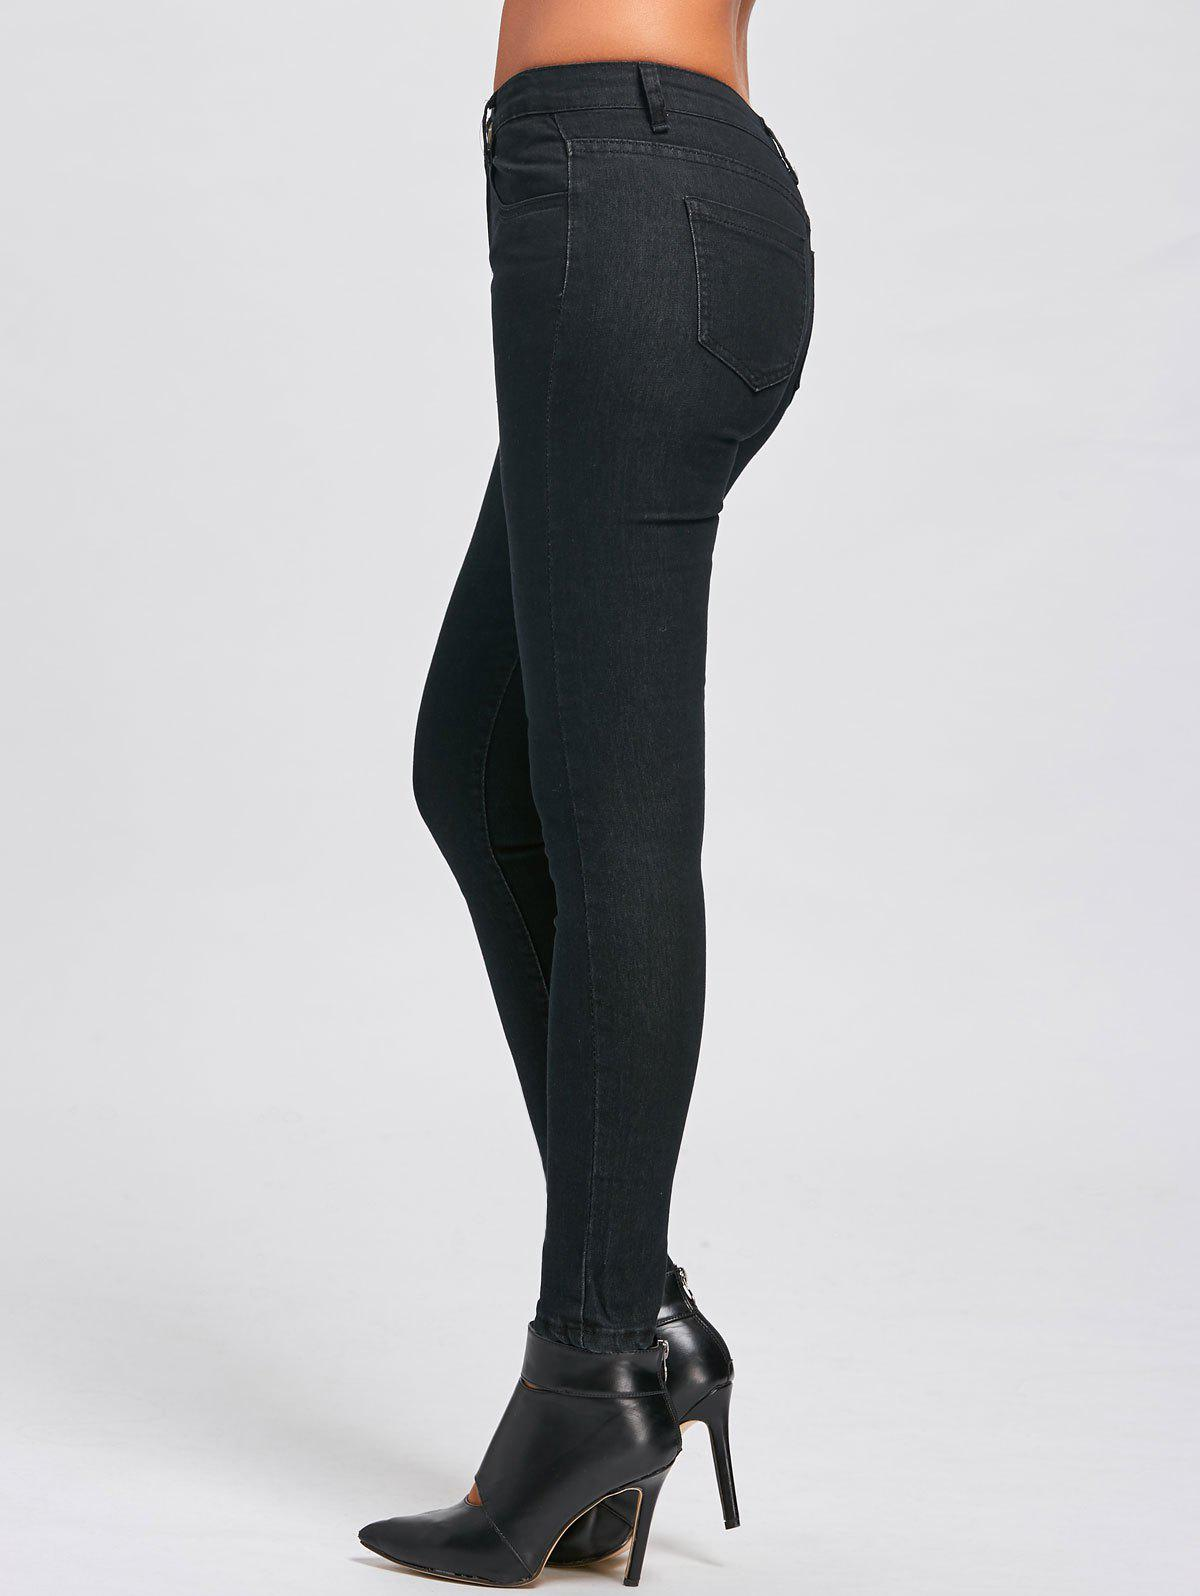 Skinny High Waist JeansWOMEN<br><br>Size: L; Color: BLACK; Material: Polyester; Length: Ninth; Wash: Dark; Fit Type: Skinny; Weight: 0.4200kg; Package Contents: 1 x  Jeans;